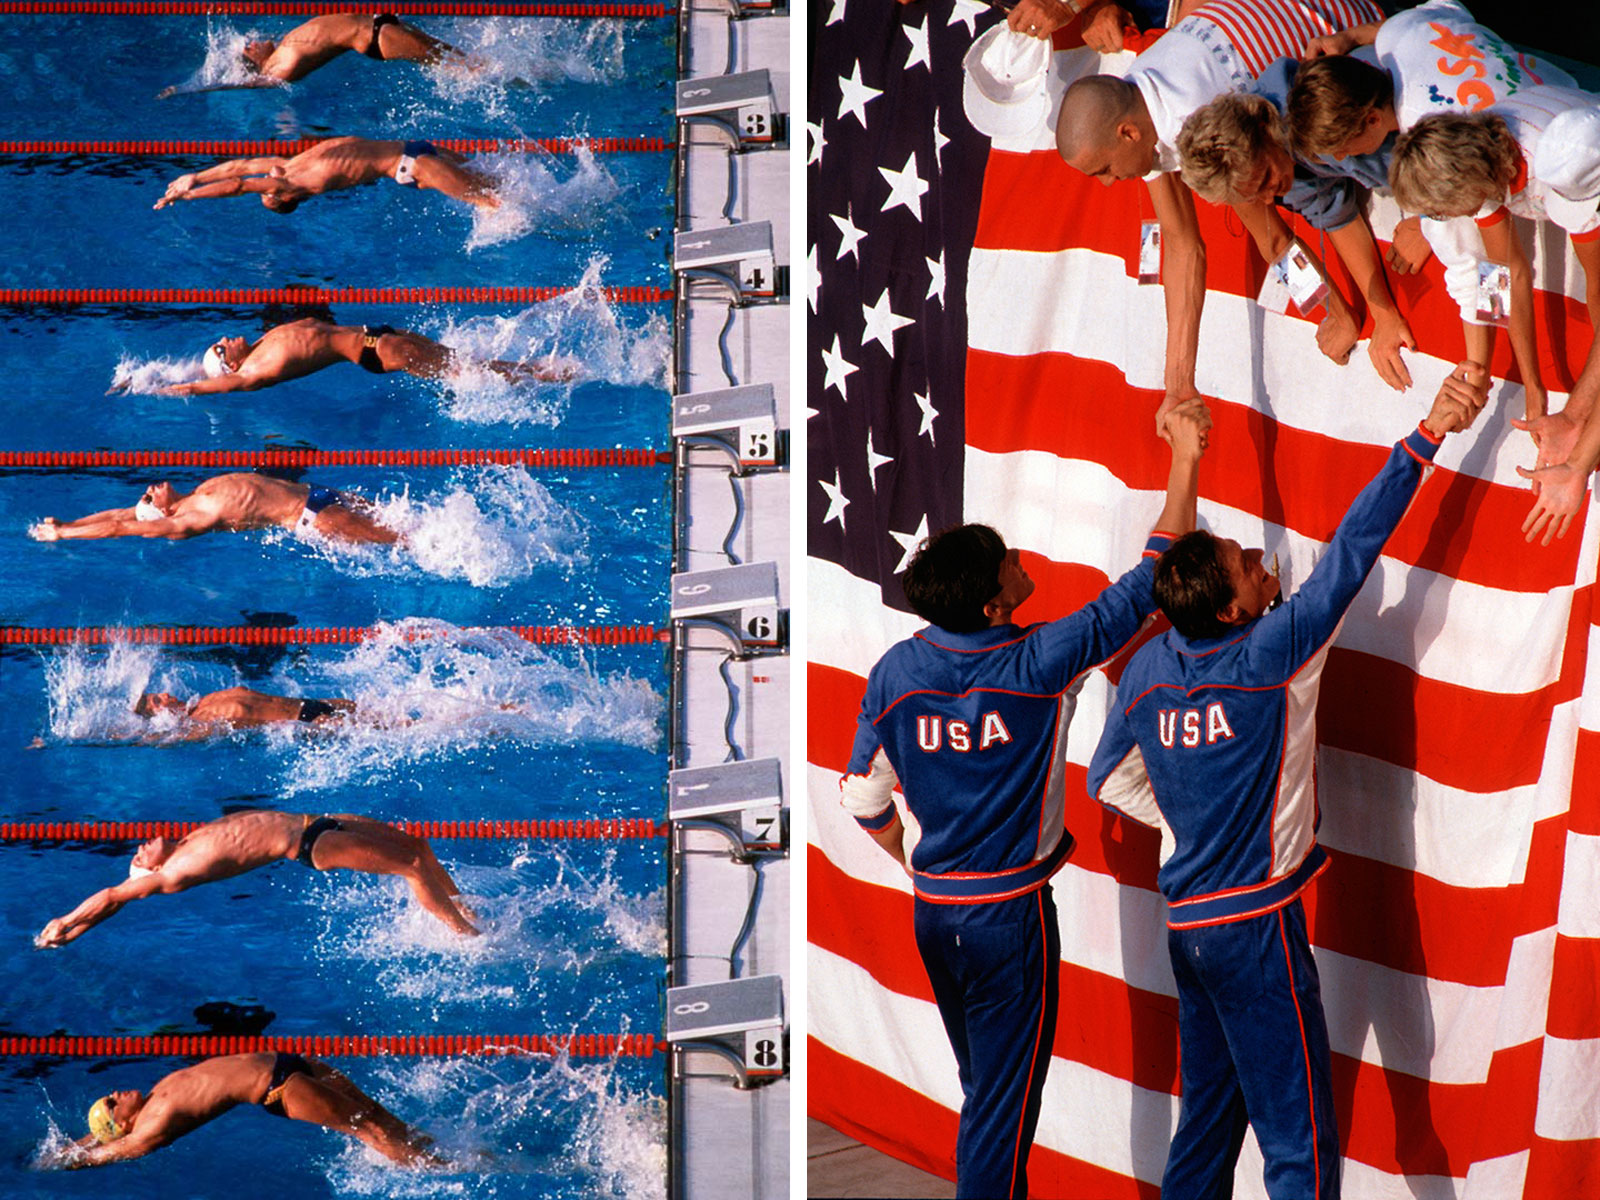 Swimmers leave the blocks at the start of a backstroke race at the 1984 Los Angeles Olympics. This image was part of an enry that was awarded the 1985 Pulitzer Prize for Spot News Photography